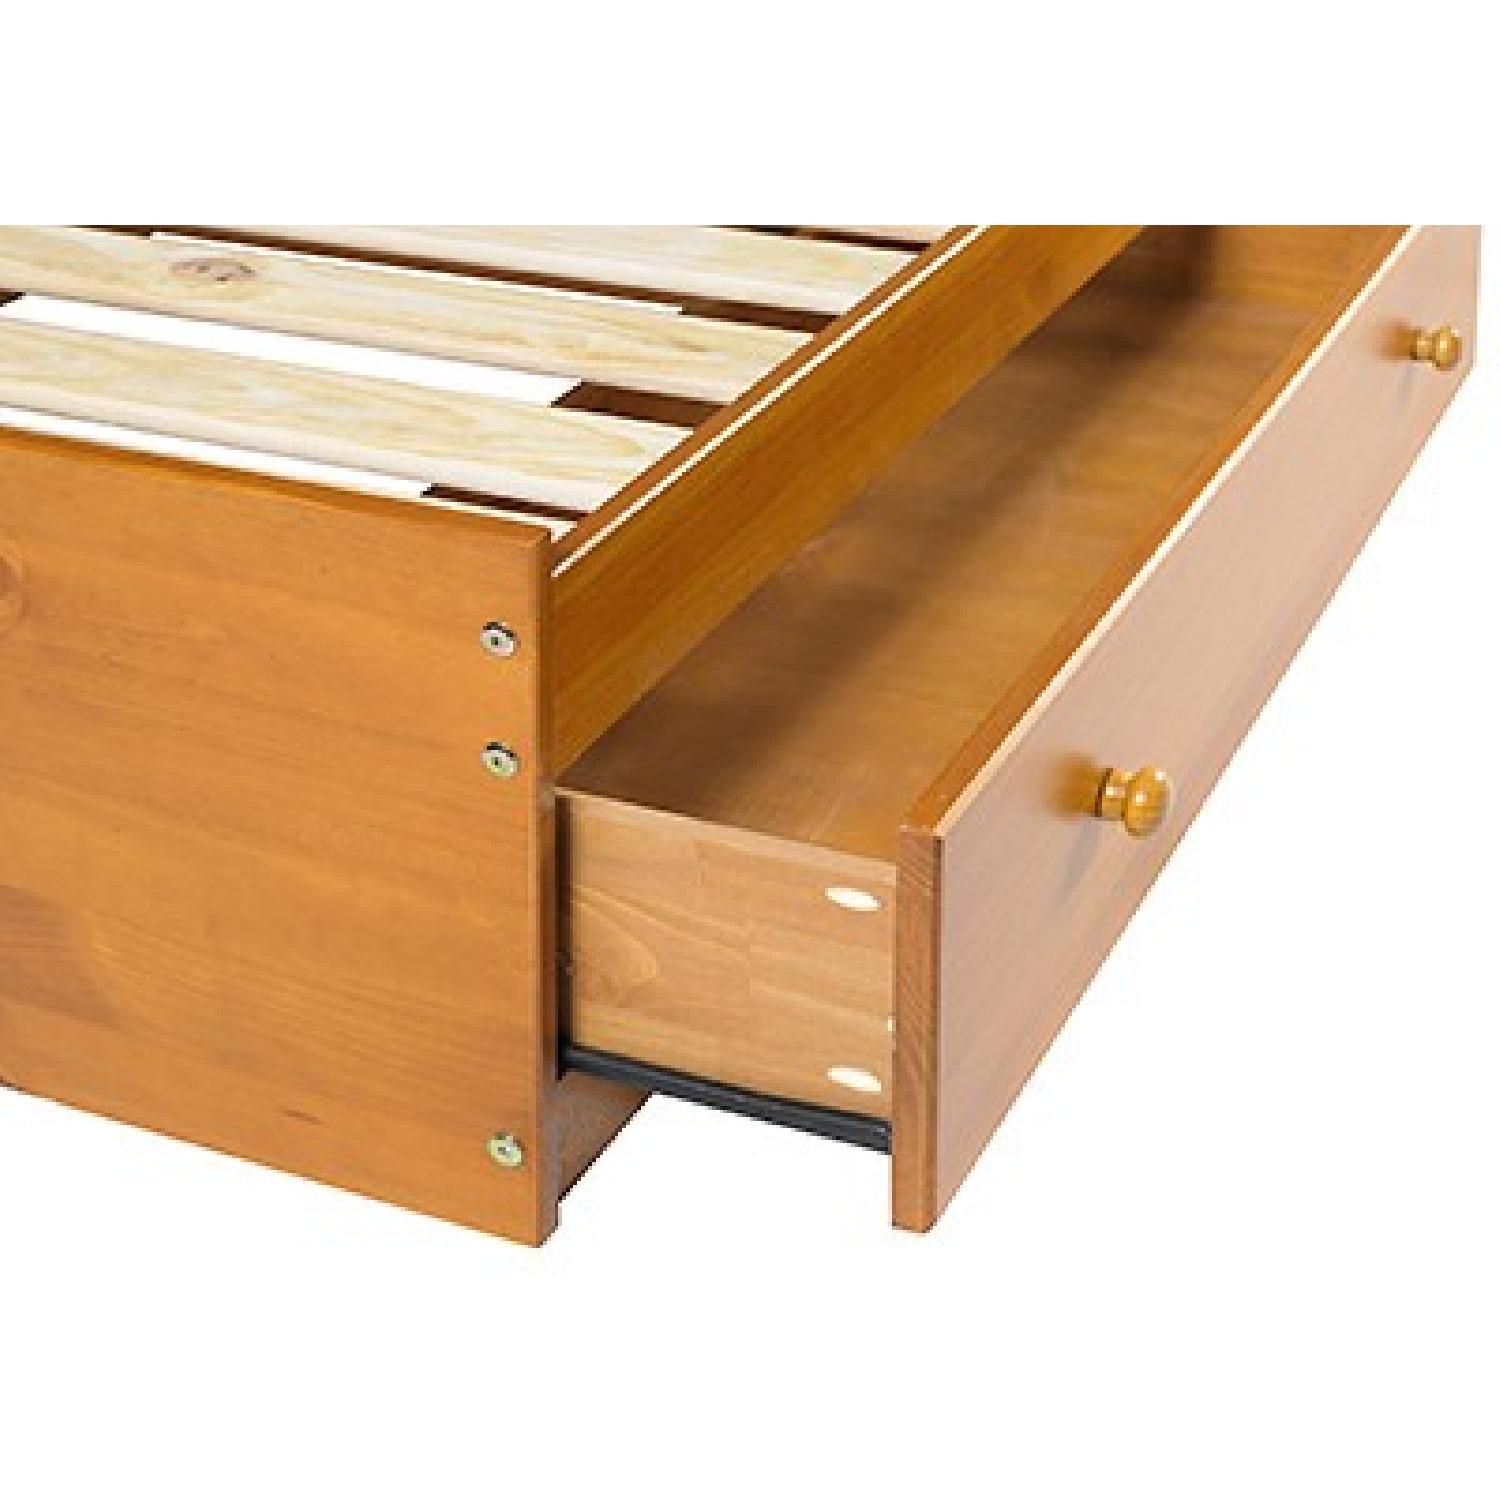 Full Size Solid Wood Bed in Honey Pine w/ Storage Drawers - image-13